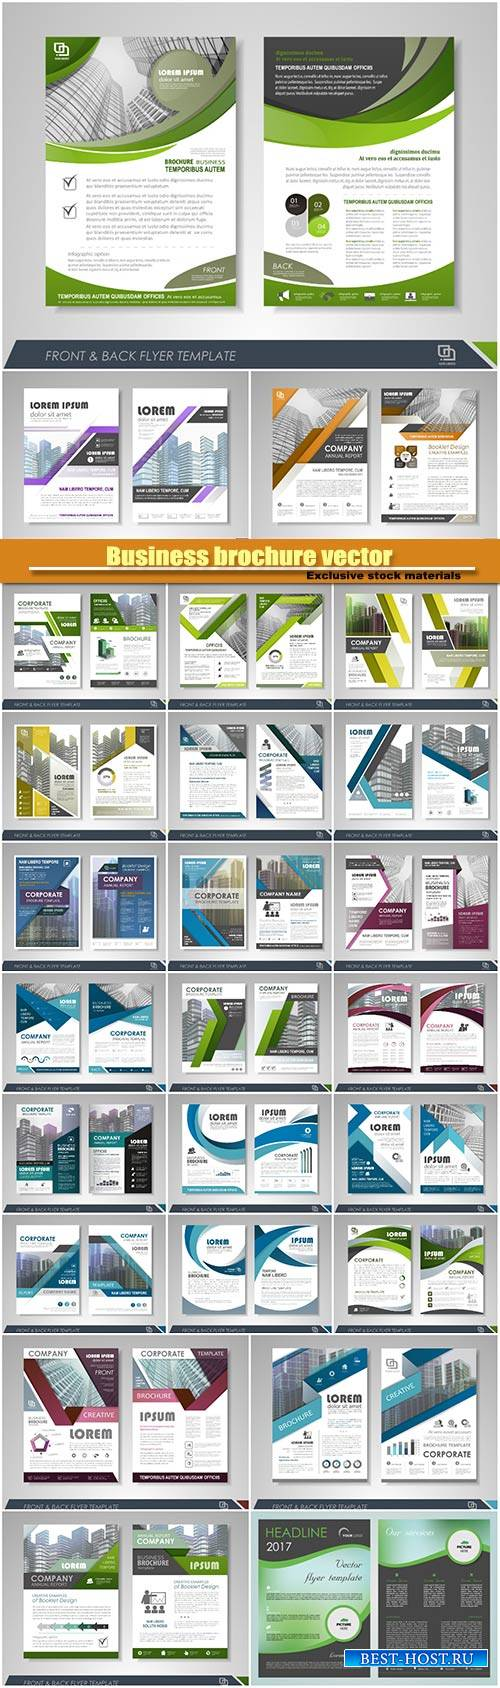 Business brochure vector, flyers templates #11